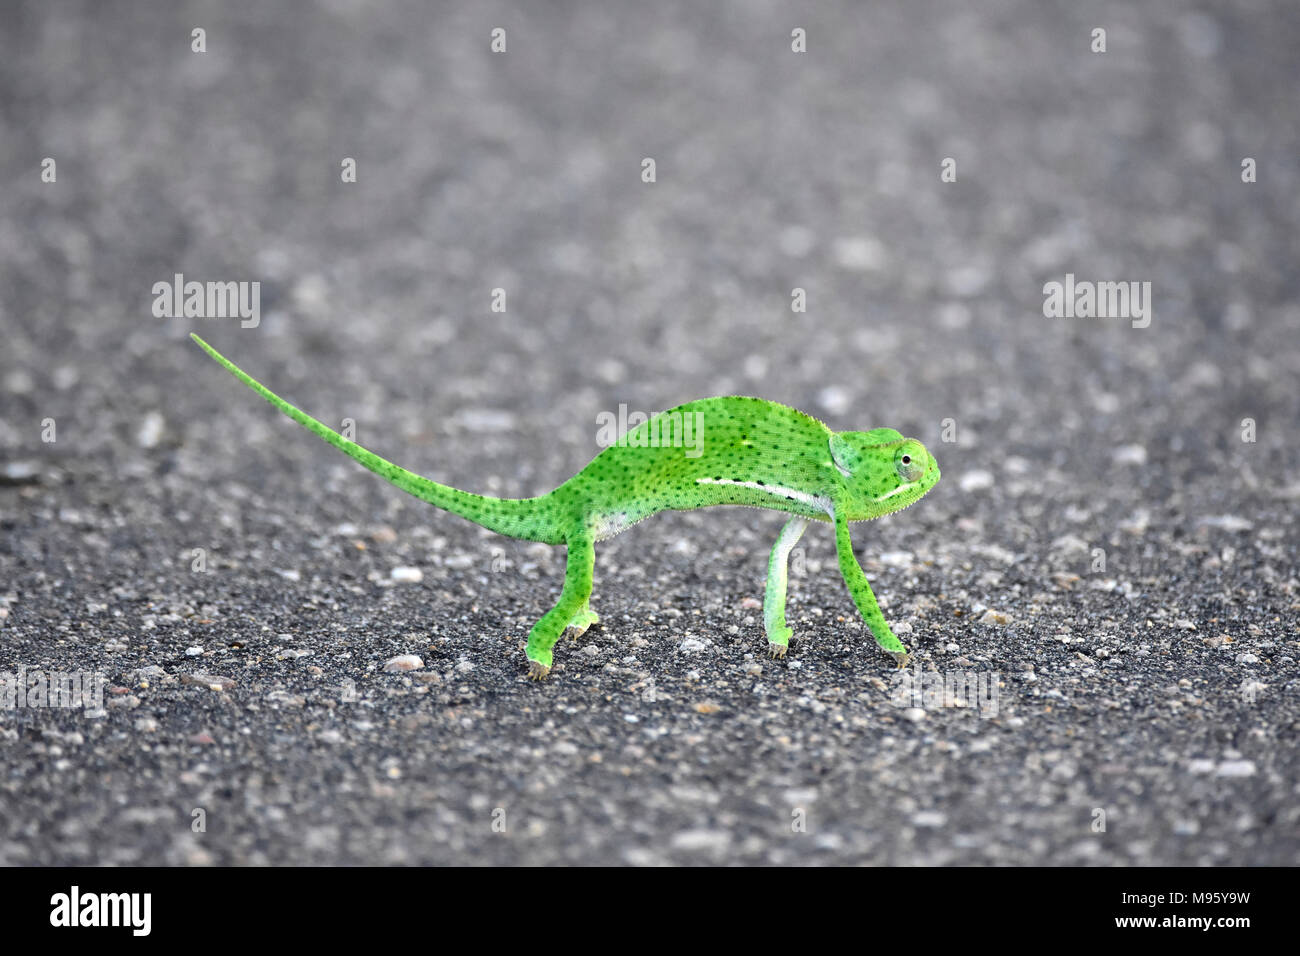 South Africa is a popular tourist destination for its blend of true African and European experiences. Kruger Park is world famous. Green chameleon. - Stock Image